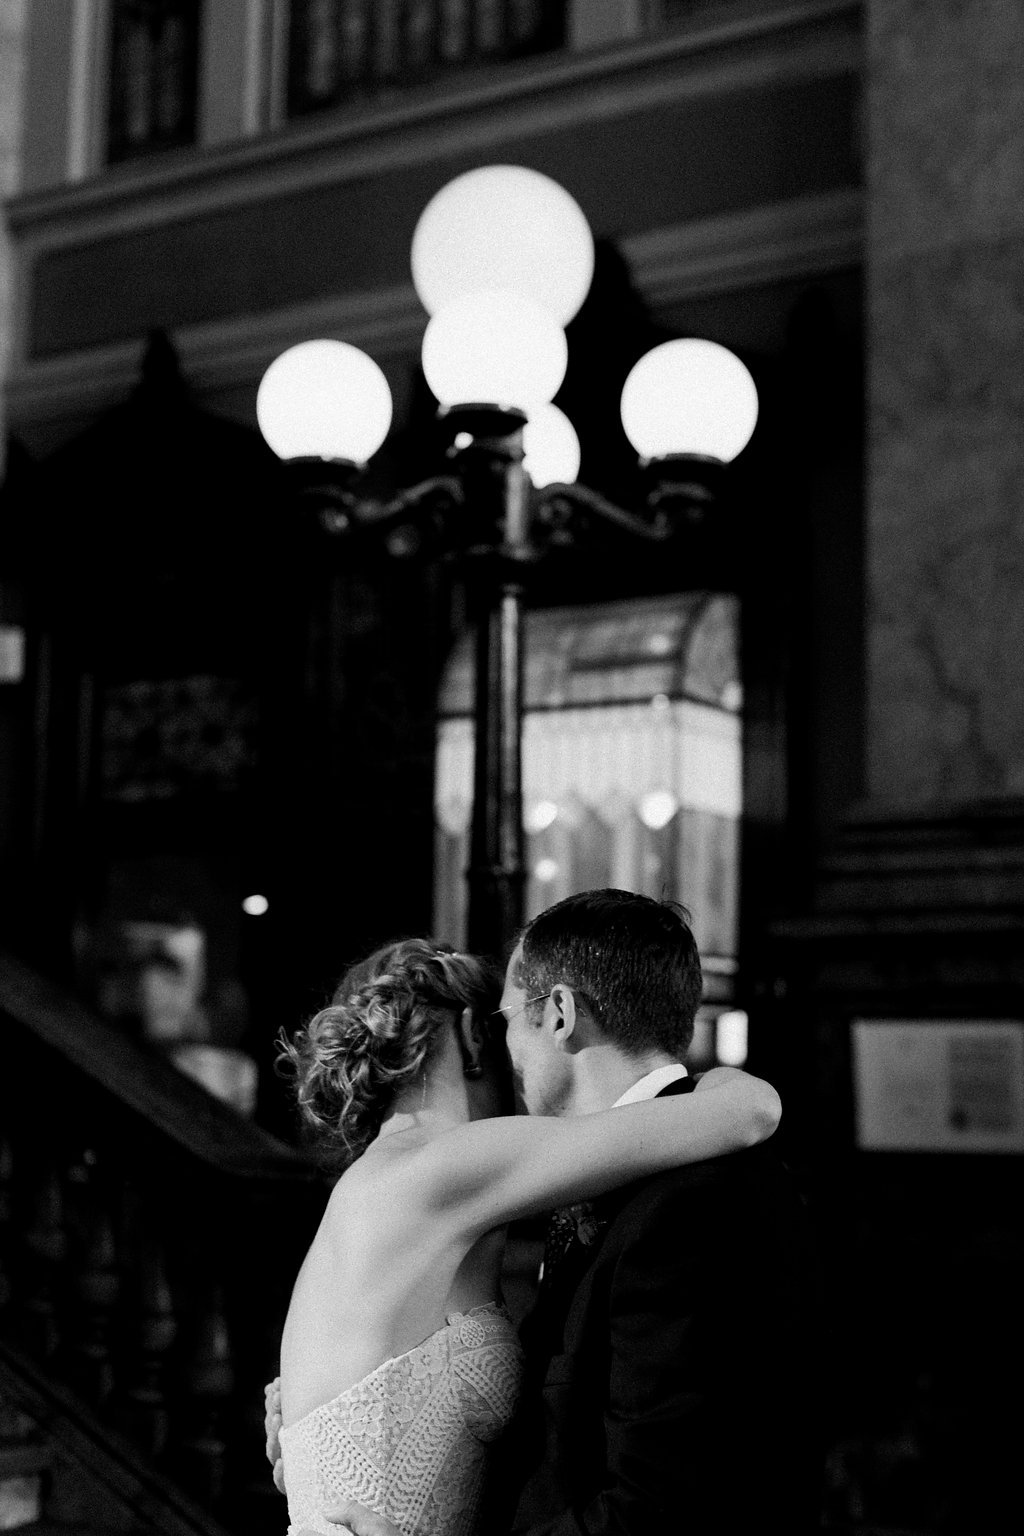 Bride and Groom share their first dance during their wedding reception at the Grand Concourse Station Square Black and white photo - 1920's inspired wedding Grand Concourse